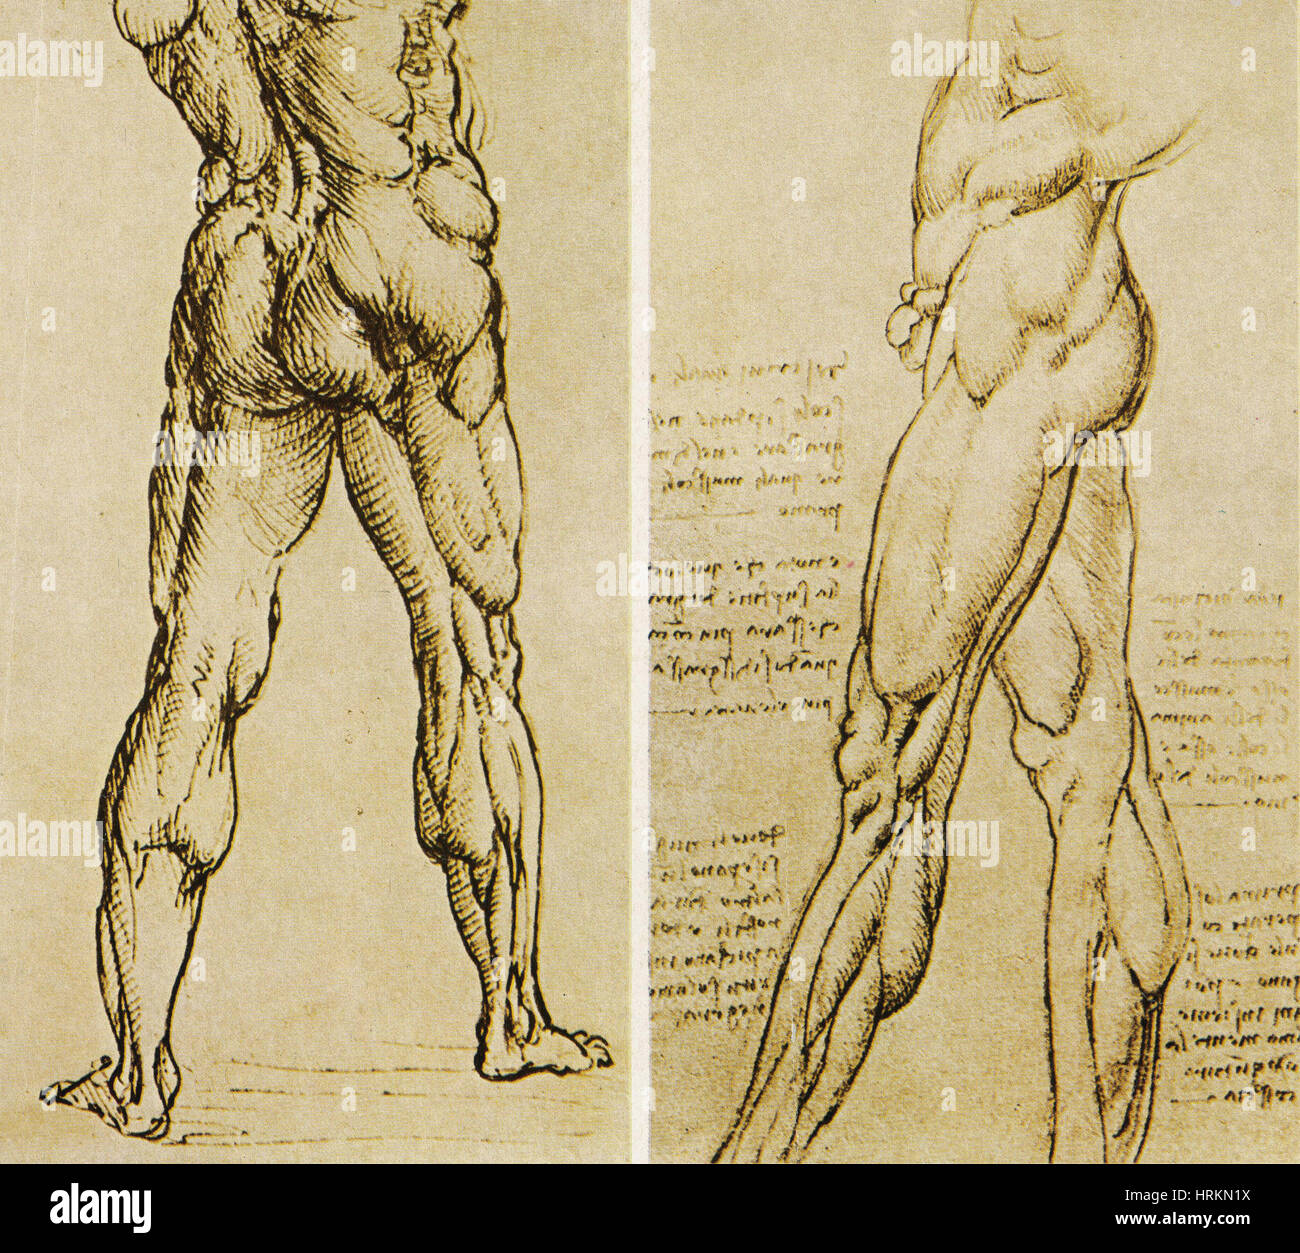 Da Vinci Anatomy Stock Photos & Da Vinci Anatomy Stock Images - Alamy